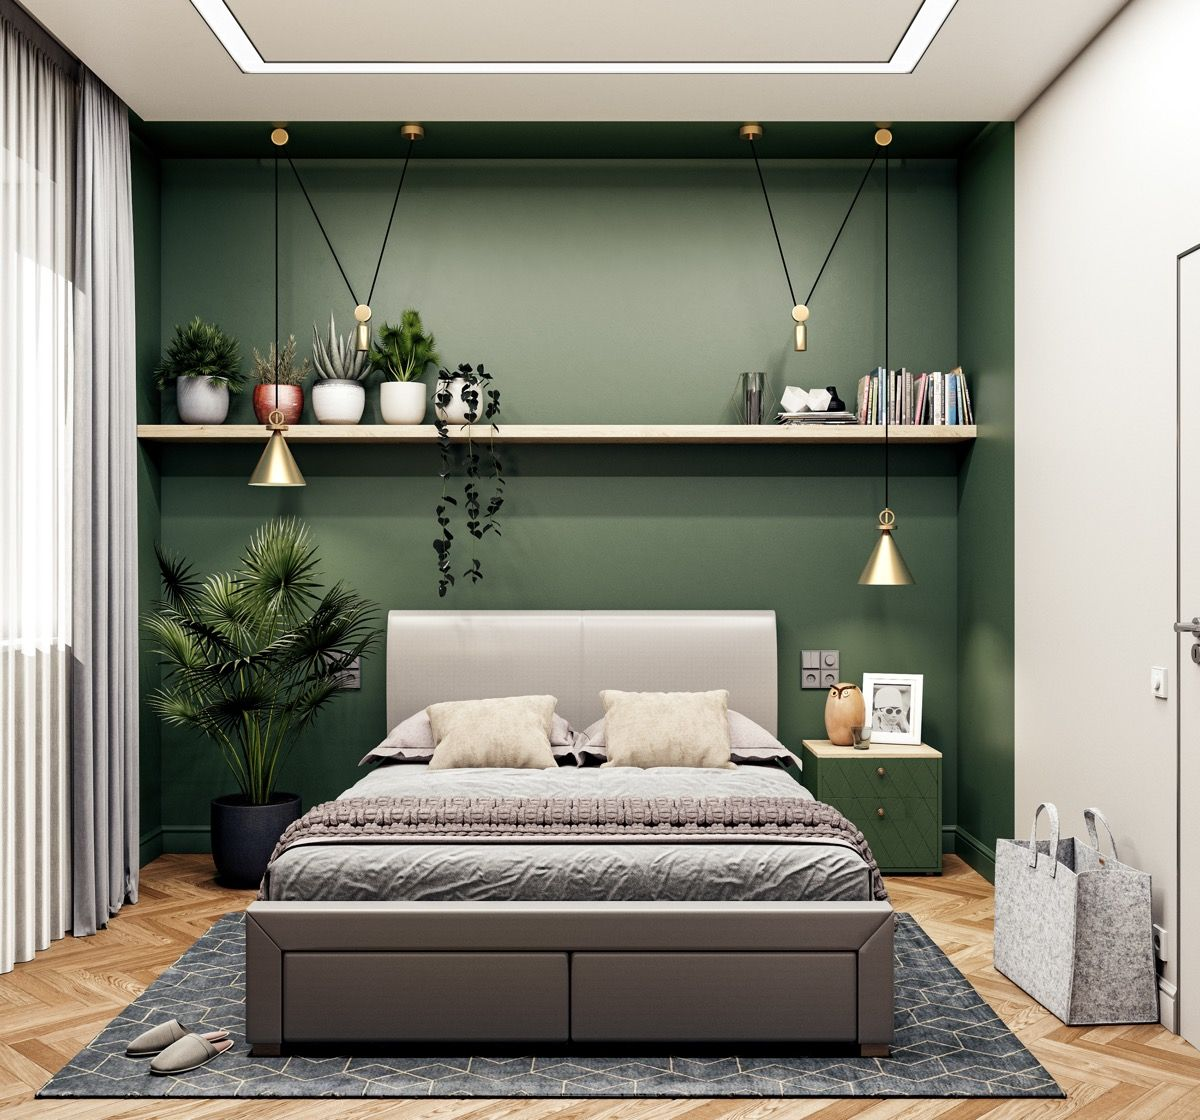 51 Green Bedrooms With Tips And Accessories To Help You Design Yours Green Bedroom Walls Green Master Bedroom Green Bedroom Design Bedroom decor ideas green